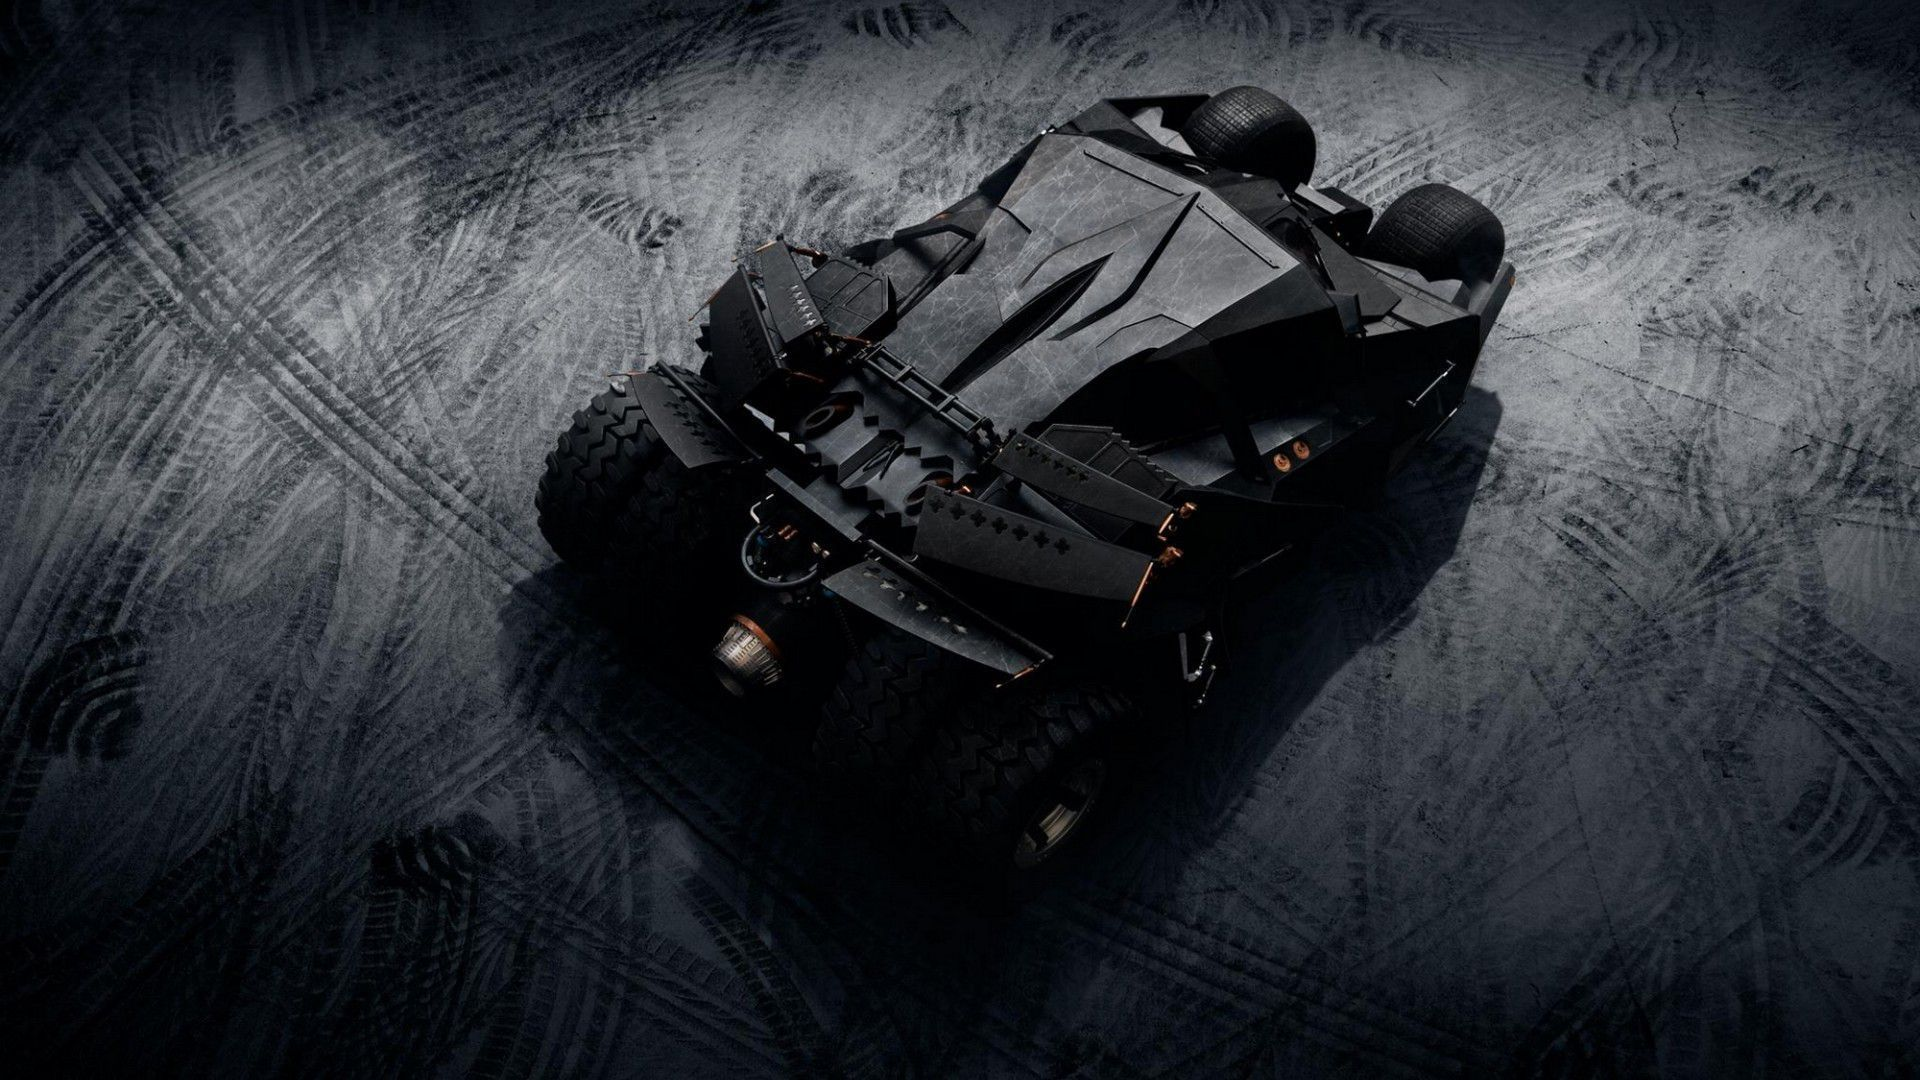 Batmobile Images